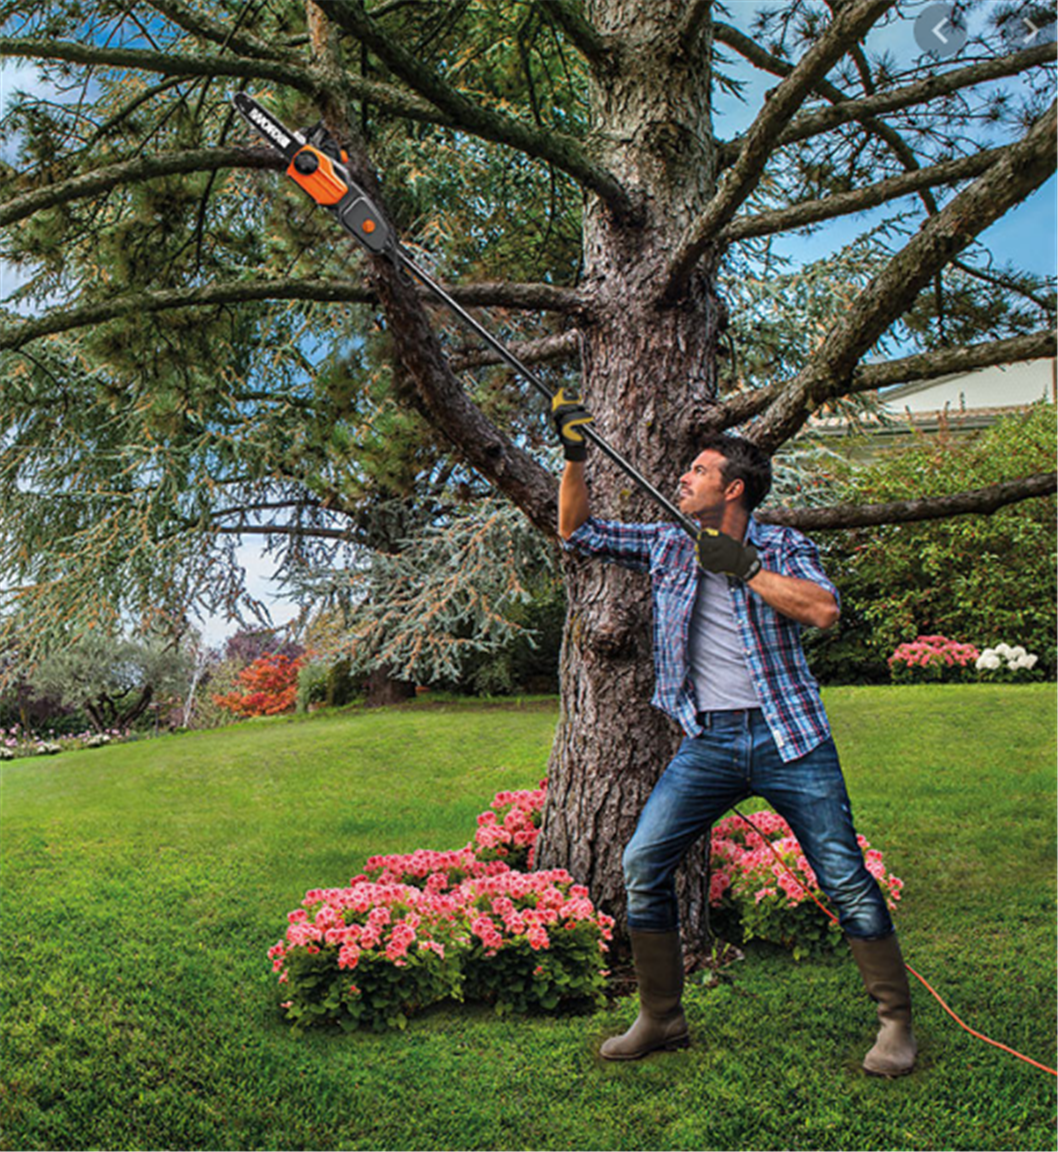 Lowes.com – WORX  8-Amp 10″ 2-in-1 Electric Pole Saw & Chainsaw Only $49.99, Reg $99.98 + Free Store Pickup!